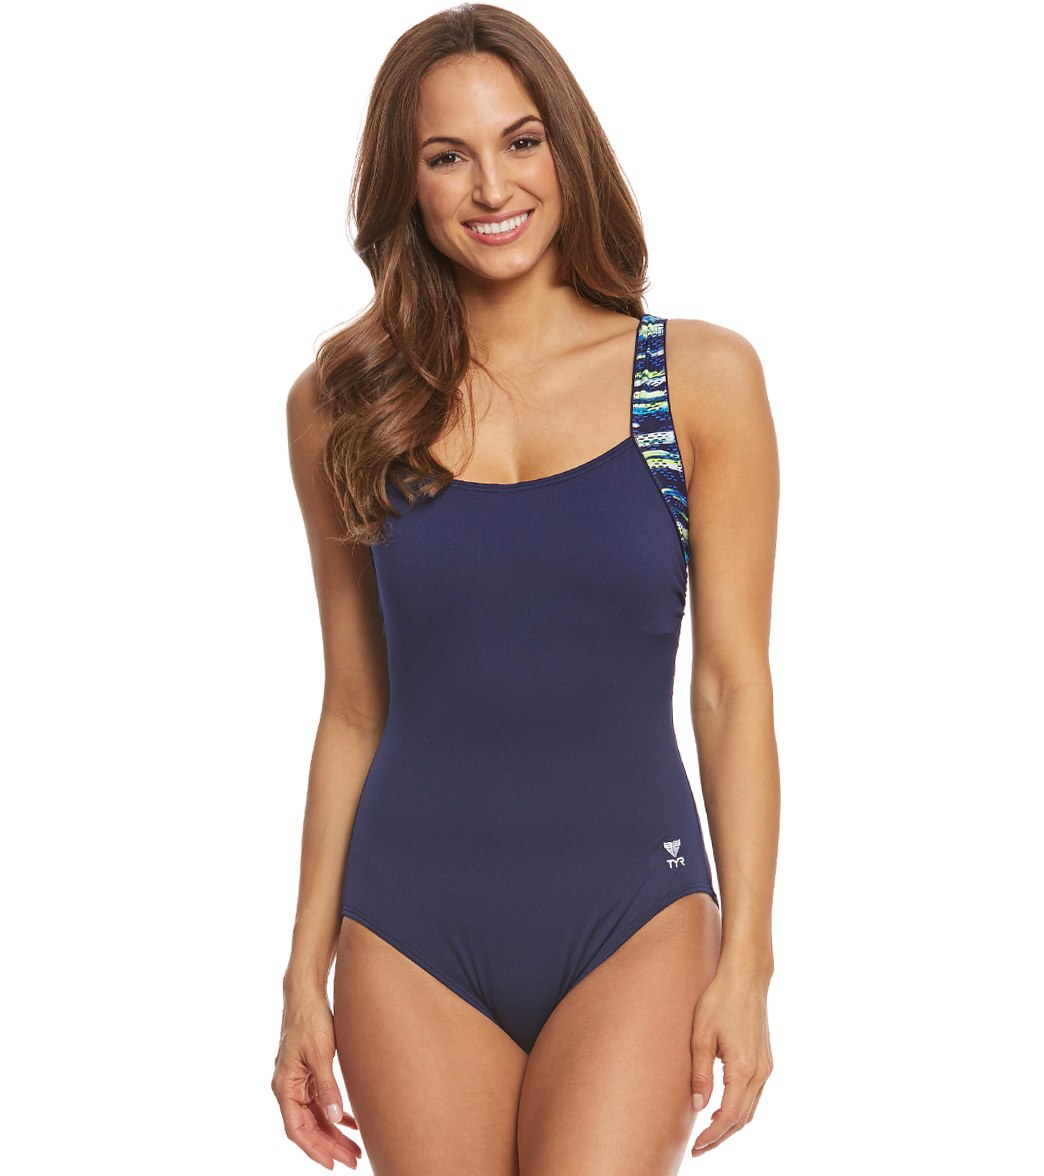 820219bf72a ... TYR Women's Bellvue Stripe Square Neck Chlorine Resistant Controlfit One  Piece Swimsuit. MODEL MEASUREMENTS